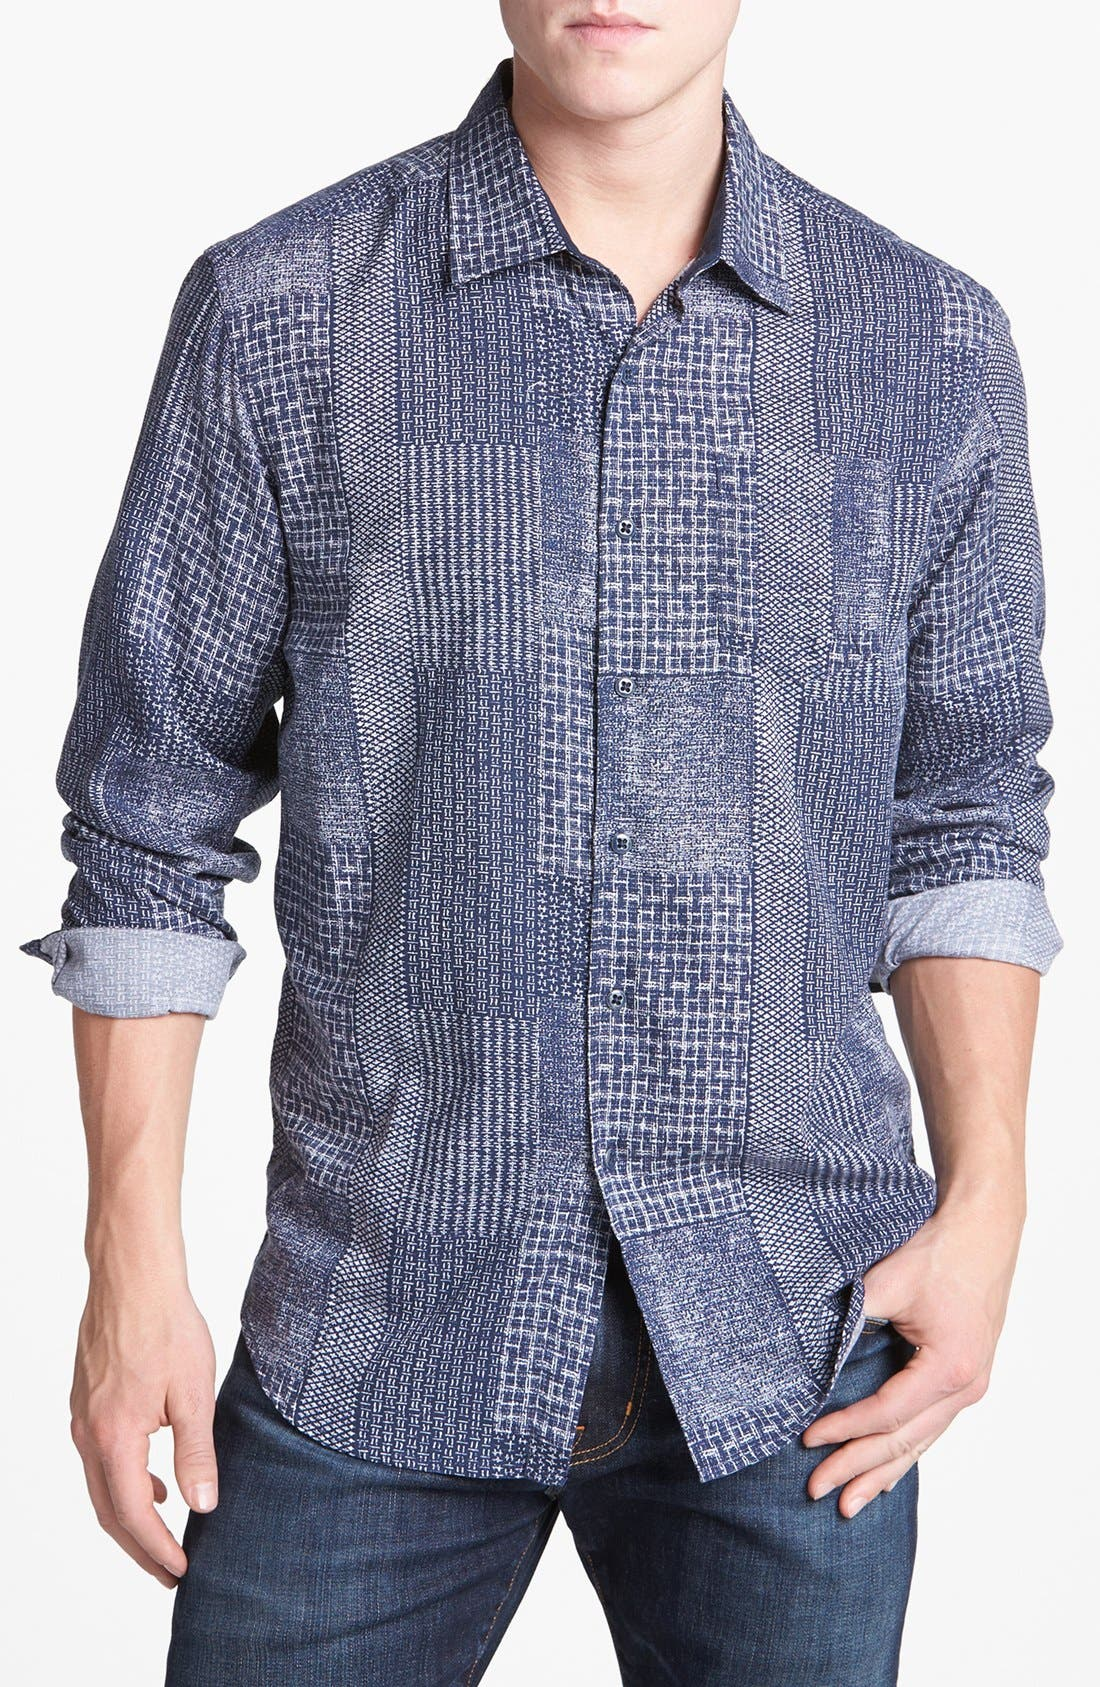 Alternate Image 1 Selected - Tommy Bahama Denim 'Indigo Crush' Island Modern Fit Sport Shirt